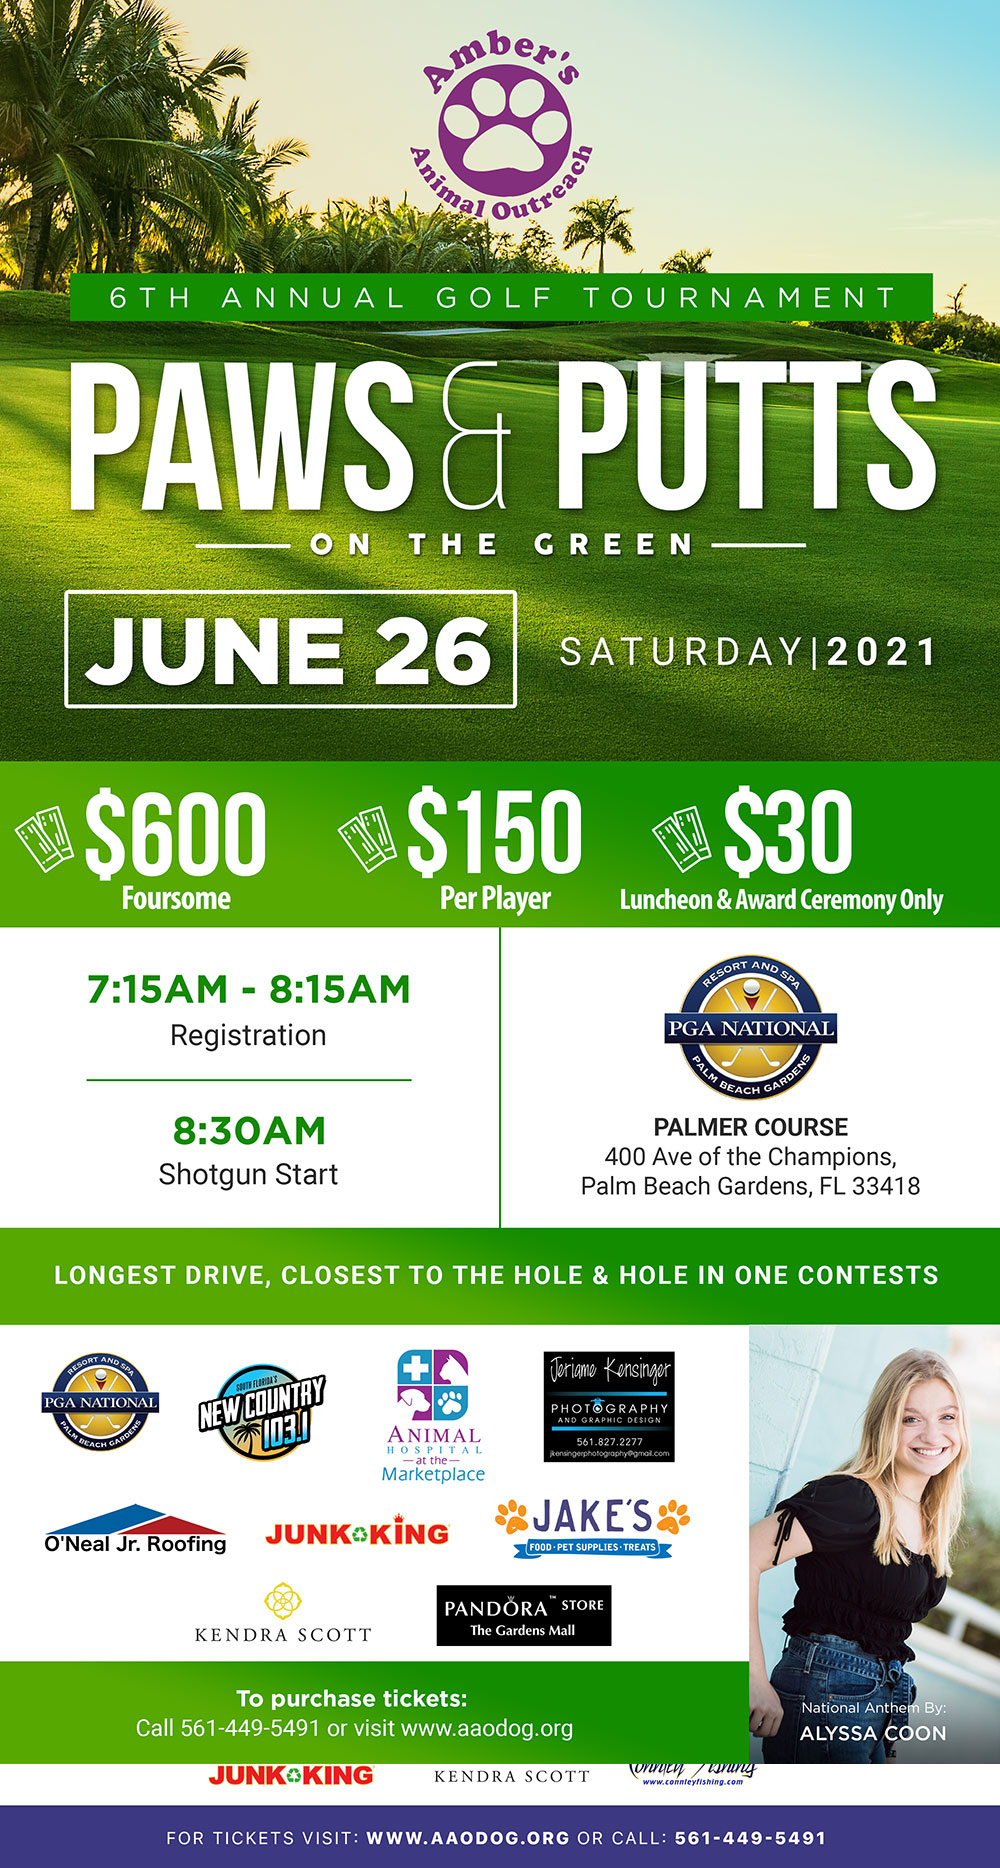 Paws & Putts - flyer